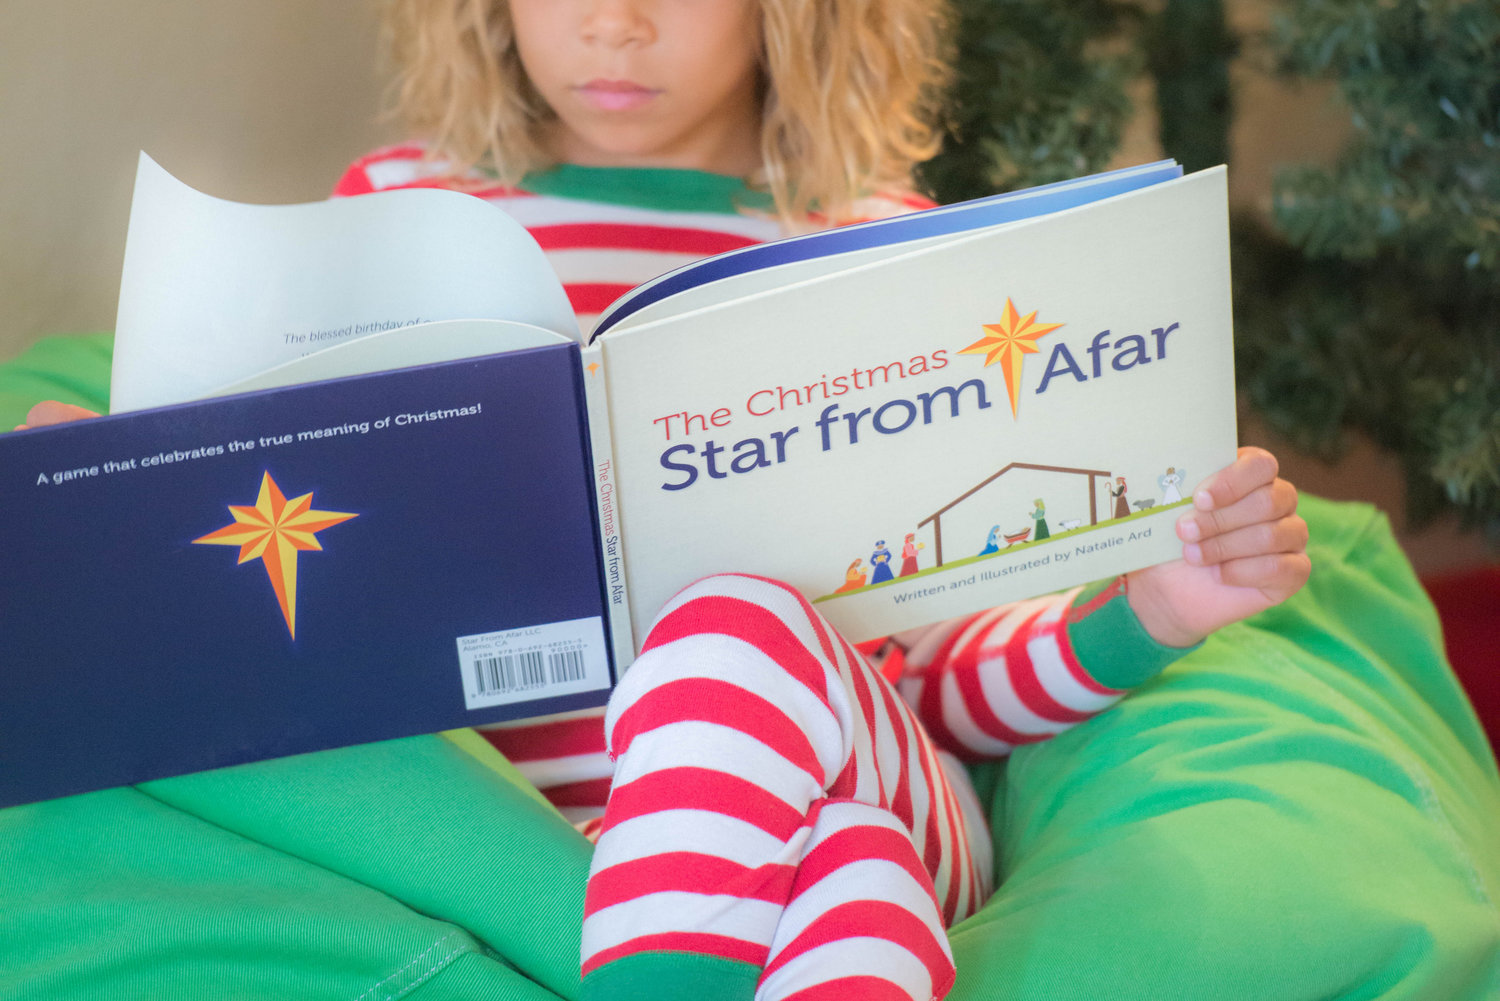 The Christmas Star From Afar – Create a New Family Tradition